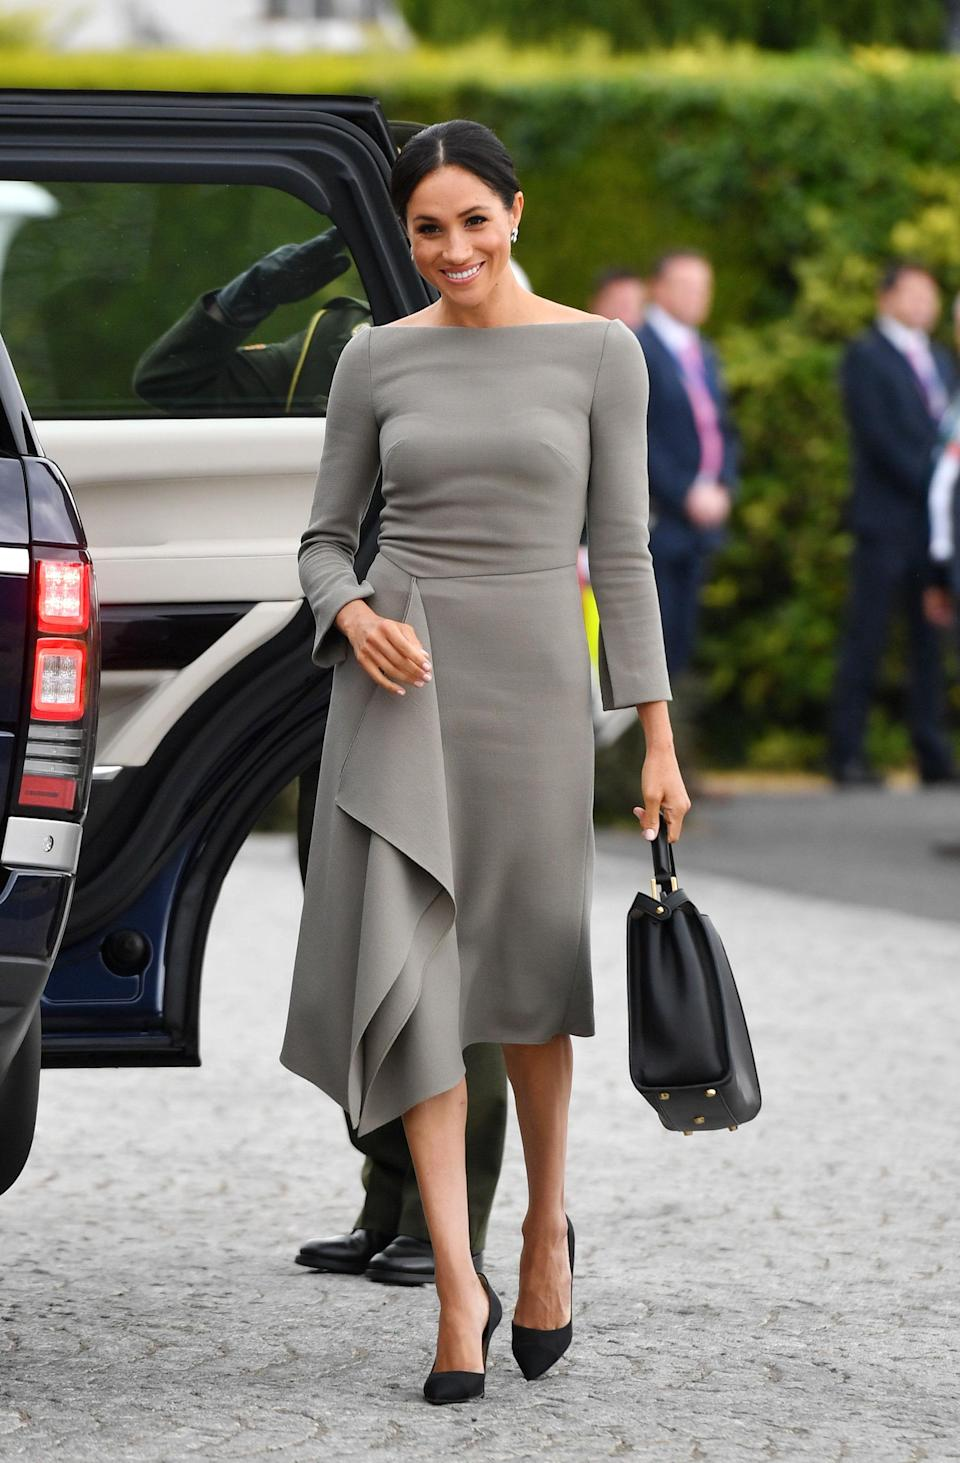 On 11 July, the Duchess of Sussex stepped out in Dublin wearing a Roland Mouret dress [Photo: PA]